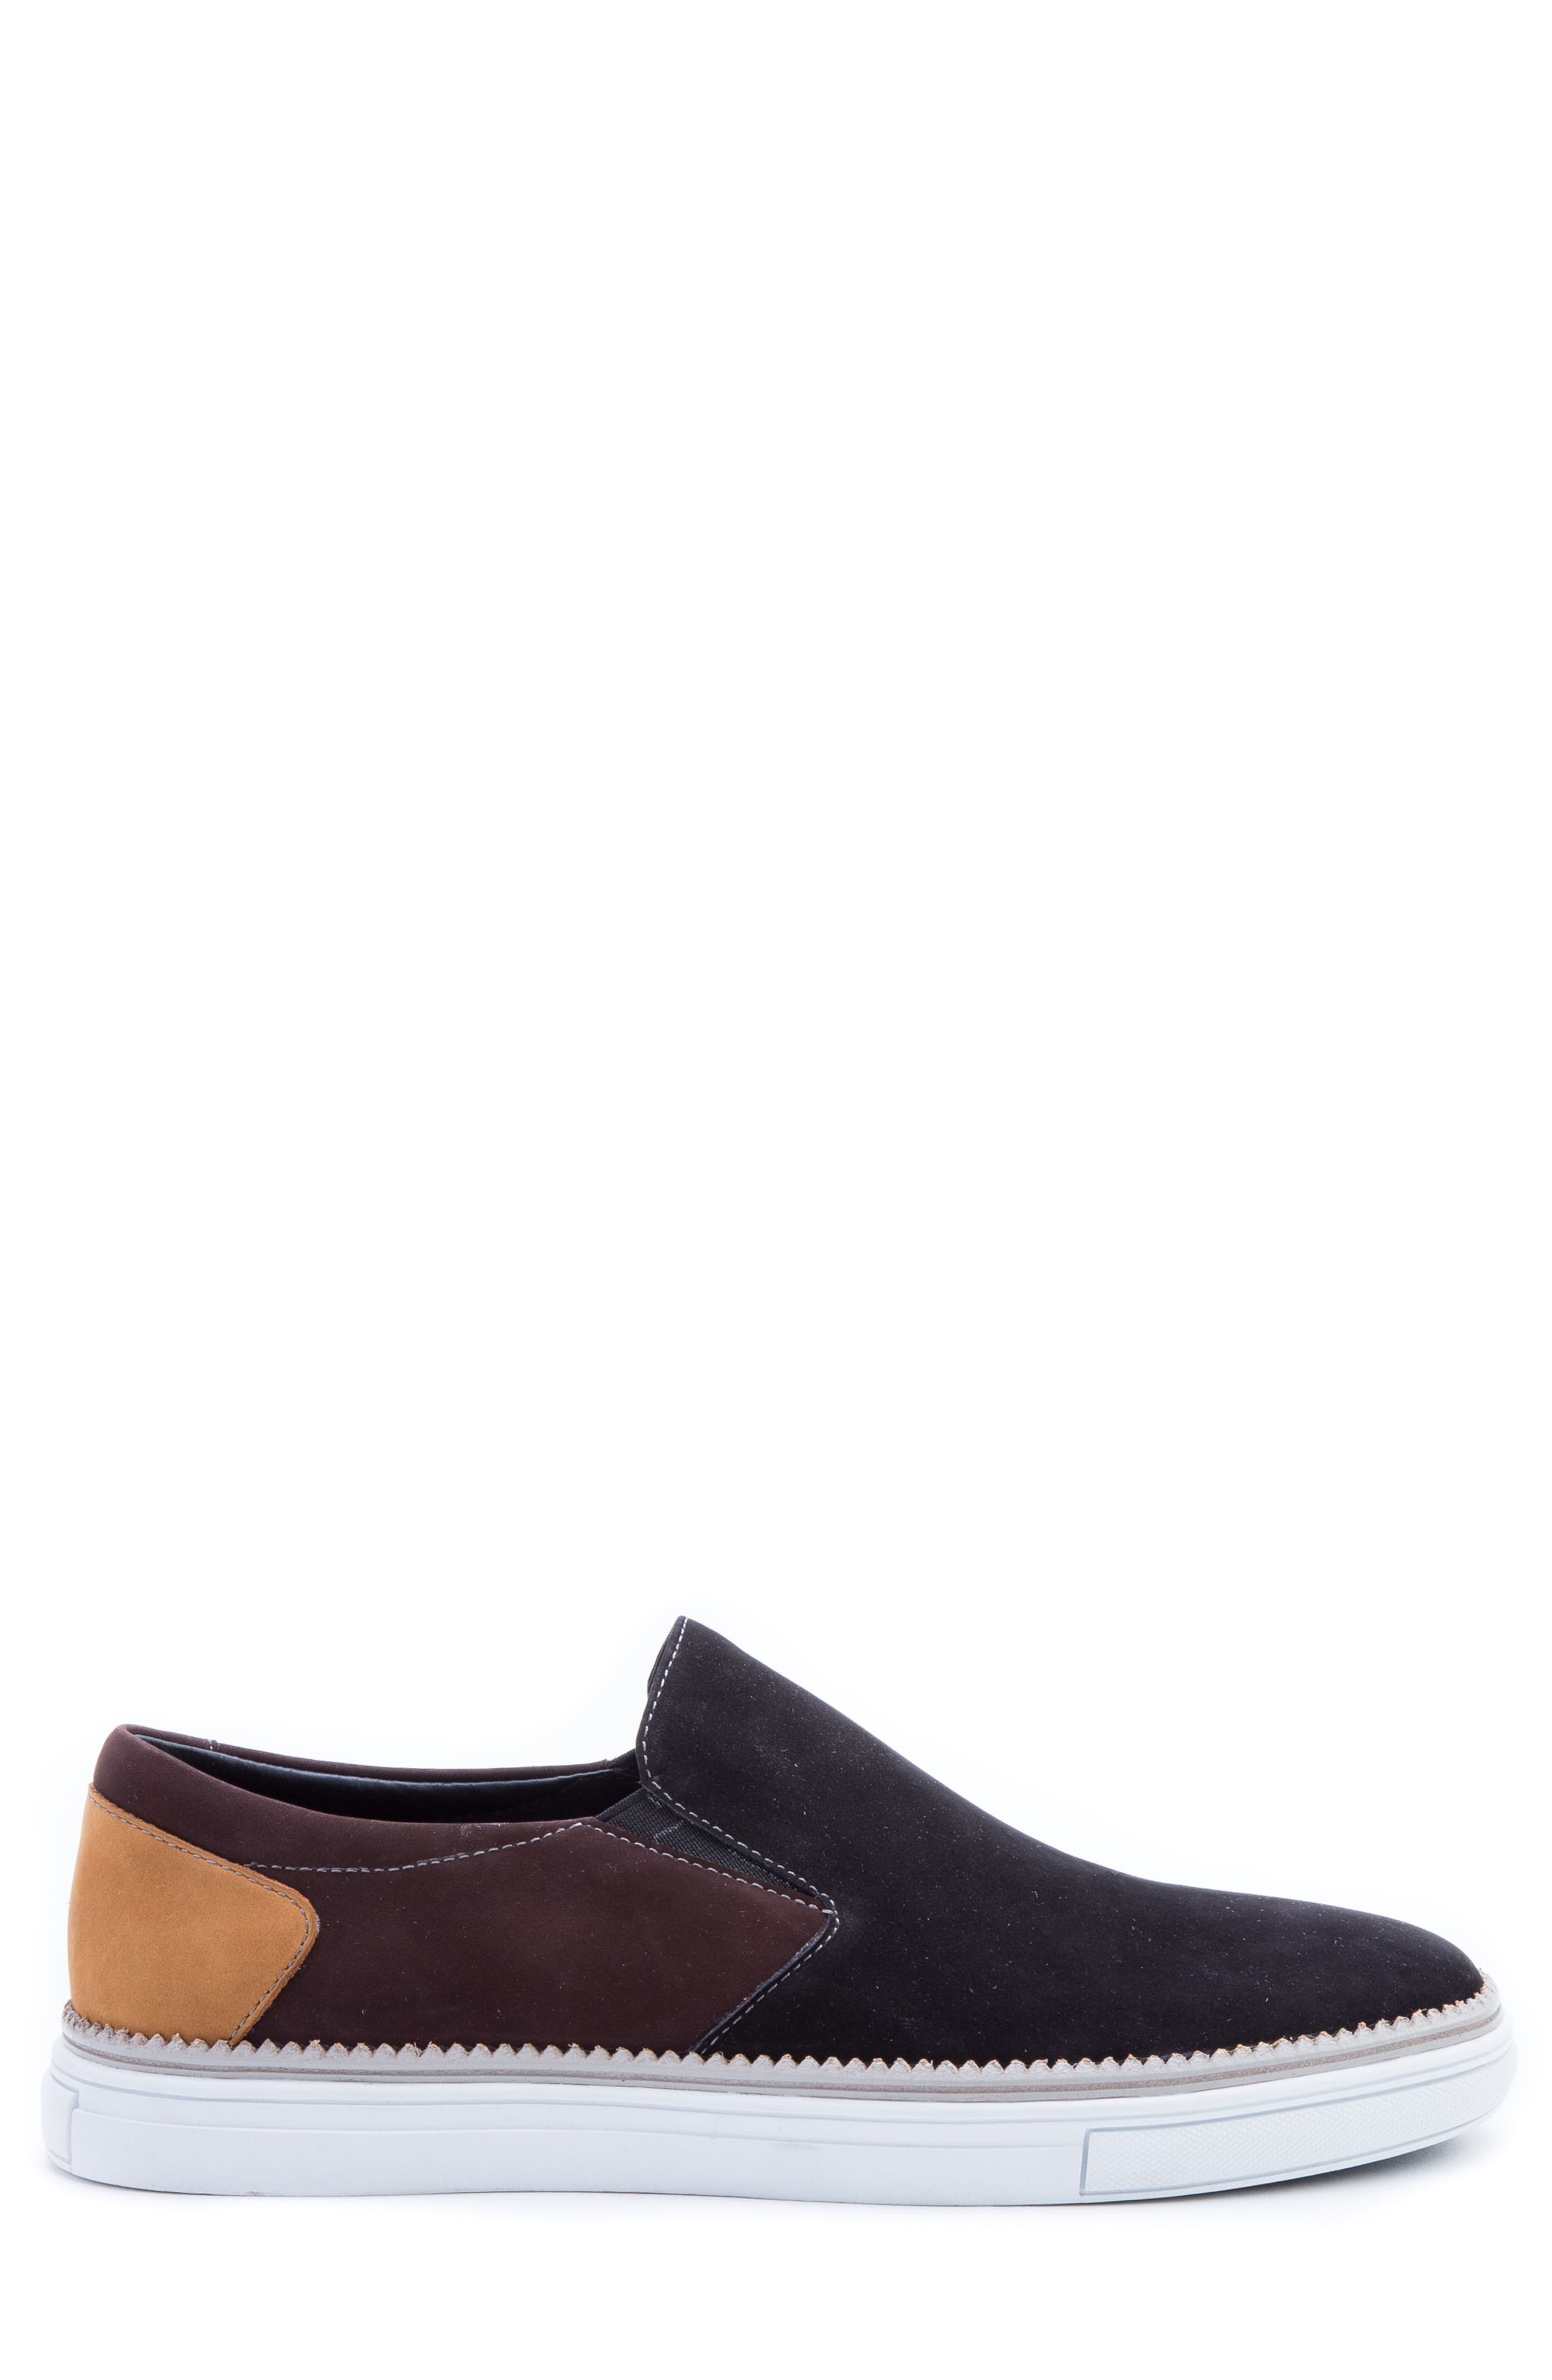 Rivera Colorblocked Slip-On Sneaker,                             Alternate thumbnail 3, color,                             BLACK SUEDE